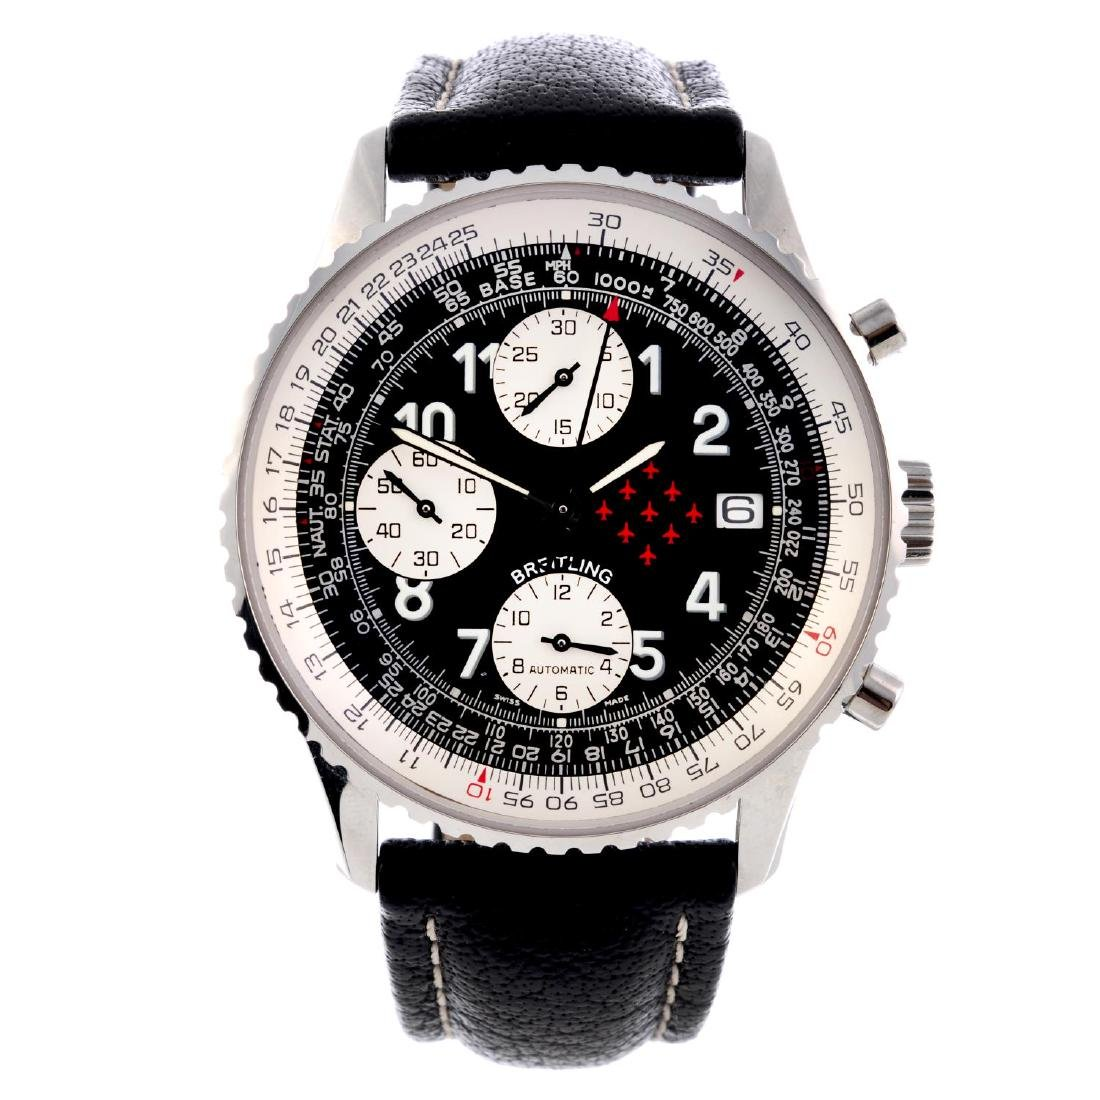 BREITLING - a limited edition gentleman's Old Navitimer